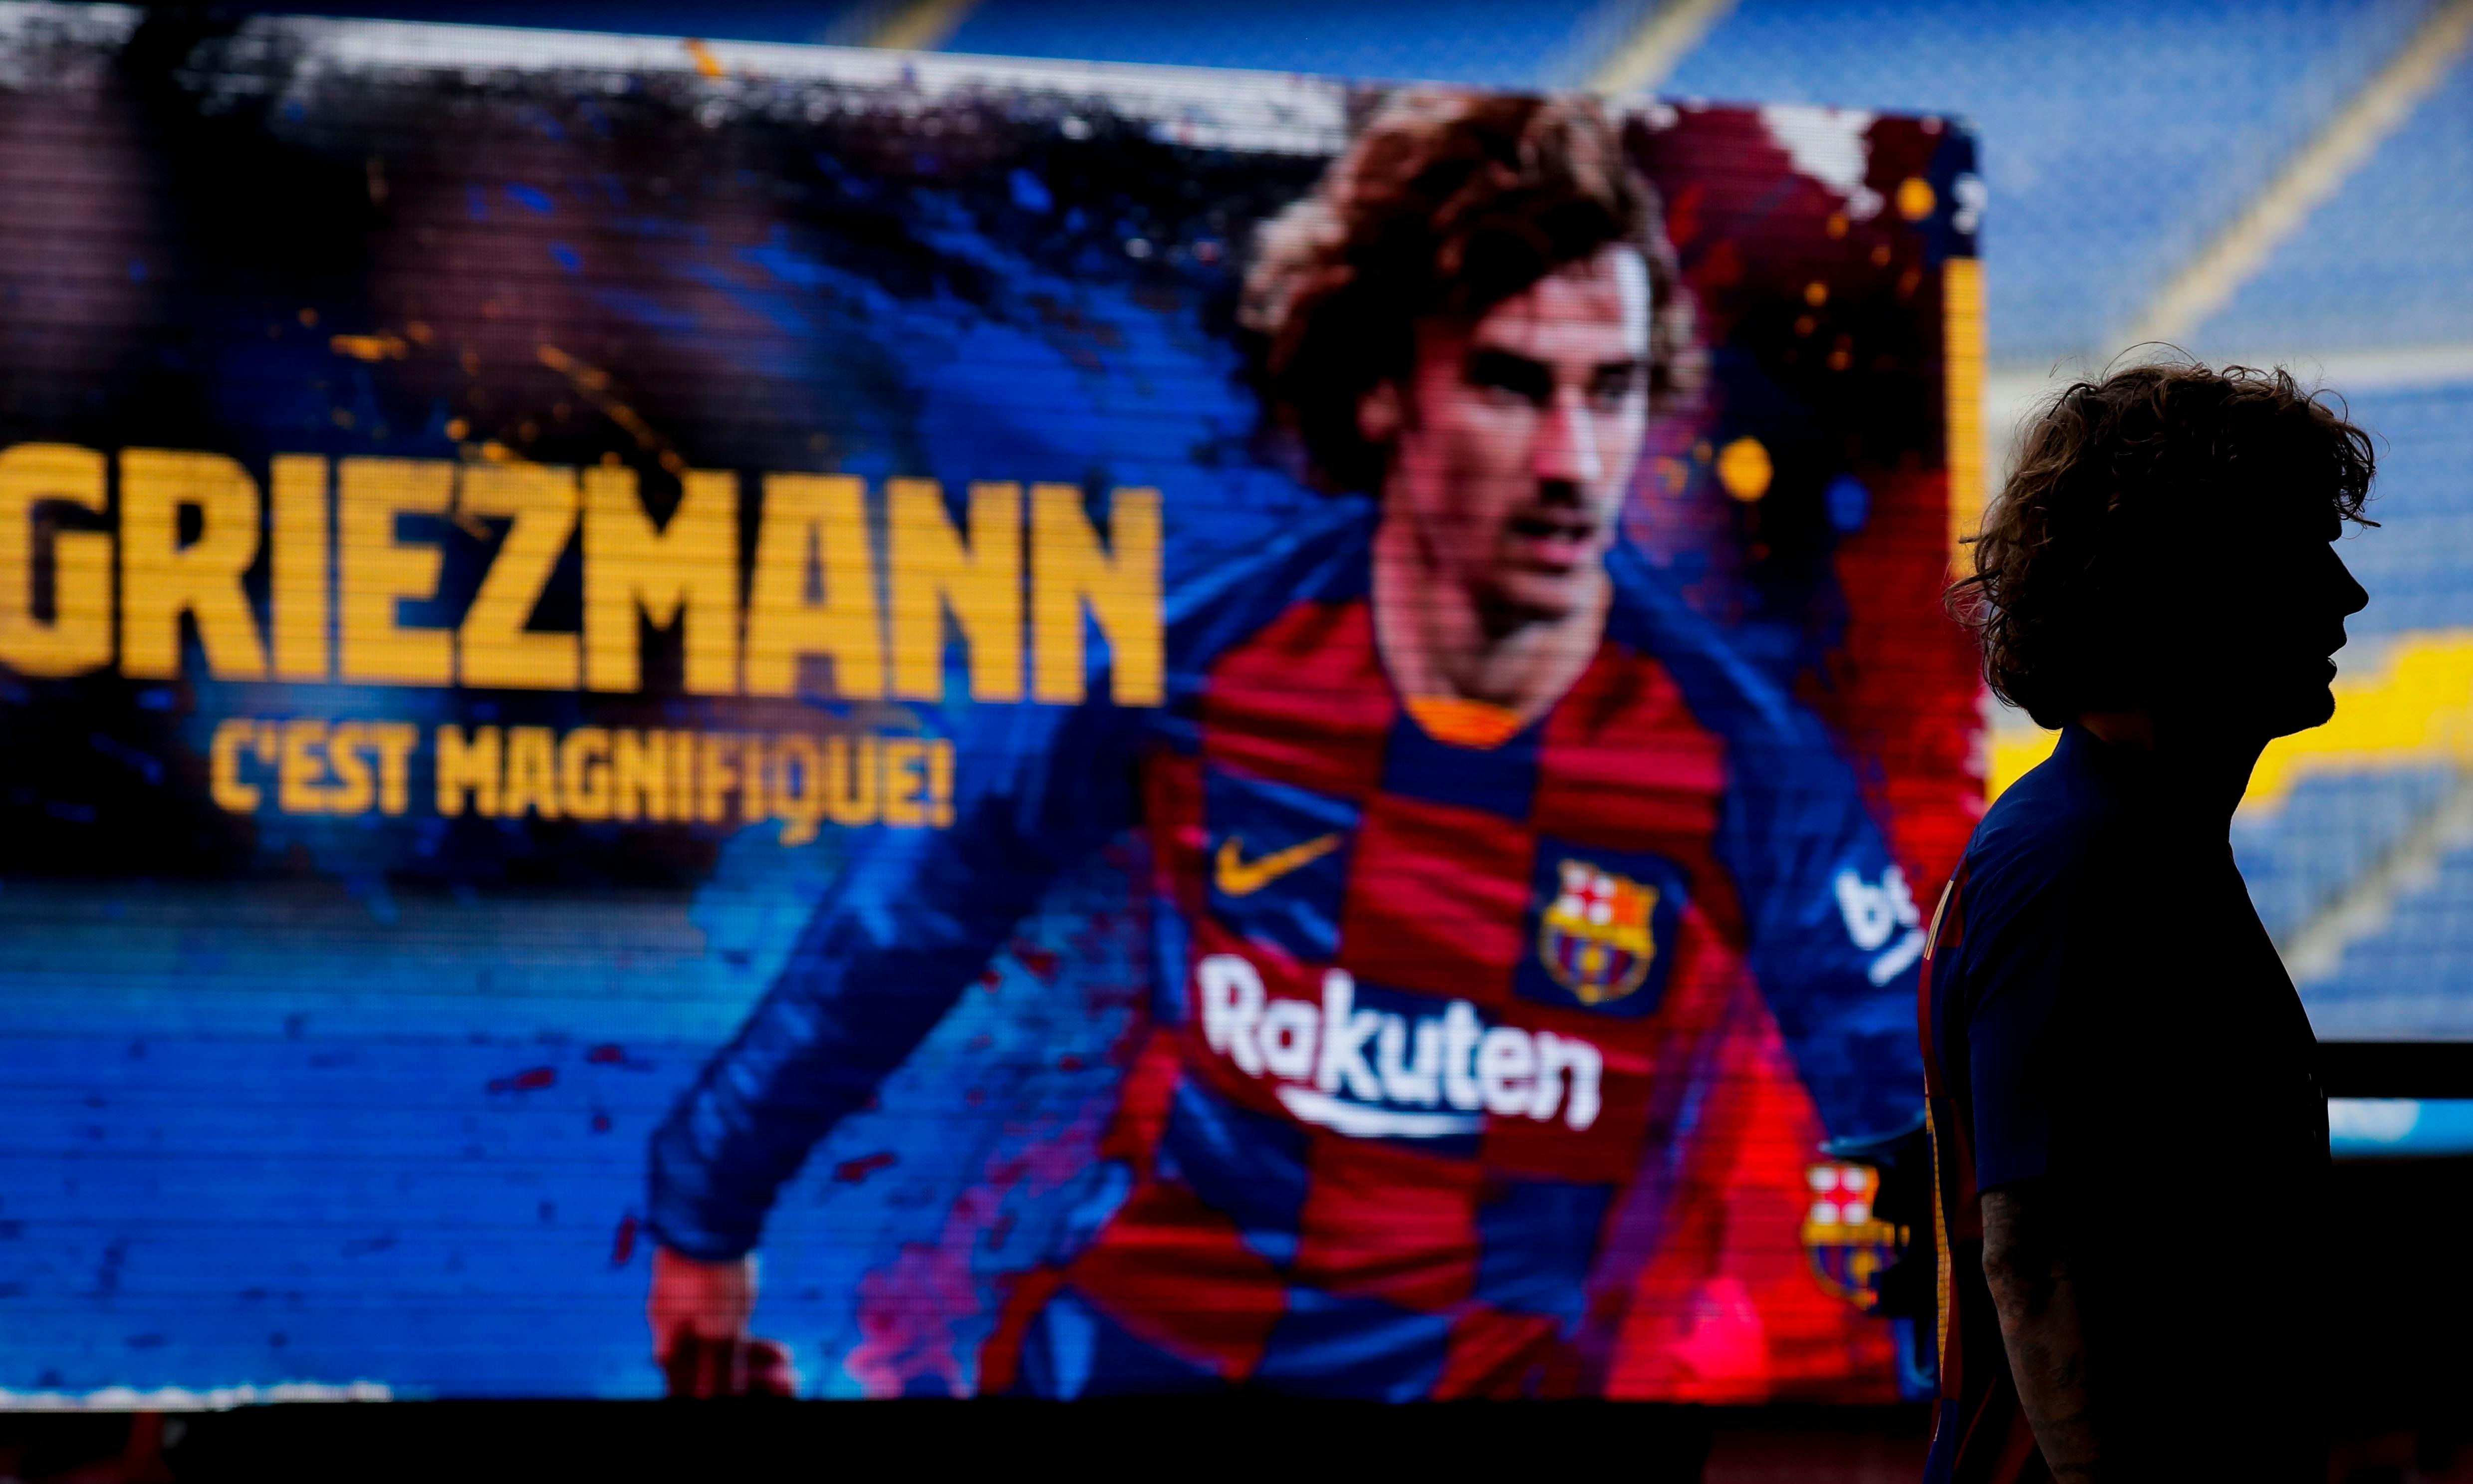 Antoine Griezmann and the question of where he fits in at Barcelona